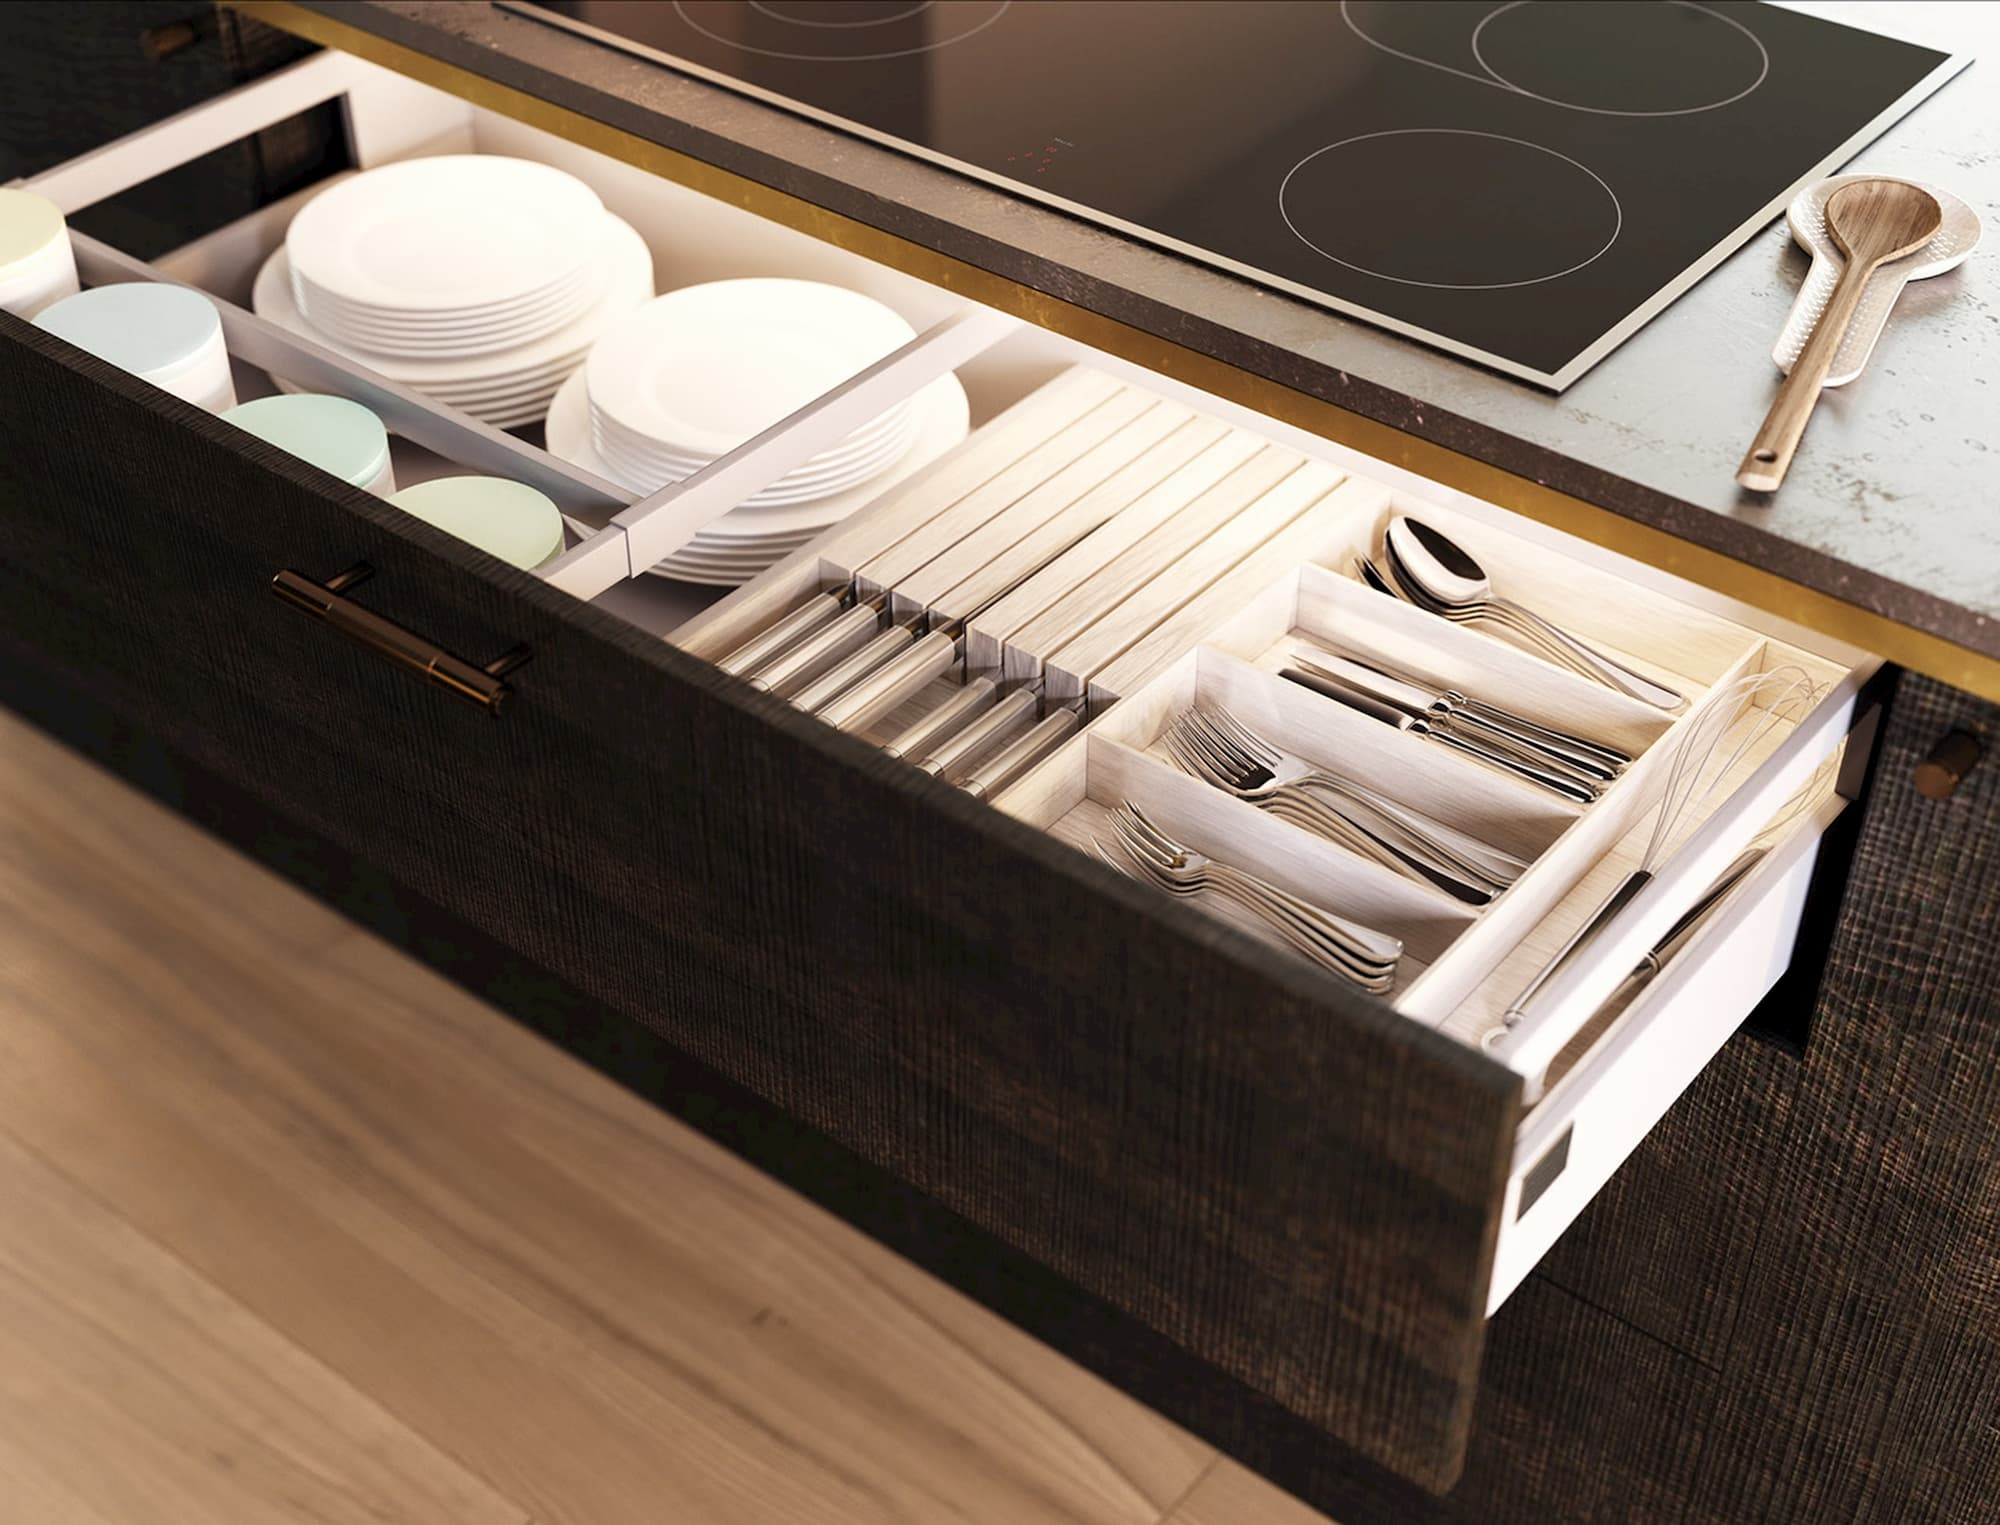 Kitchen drawer divided into neat compartments for plates and silverware